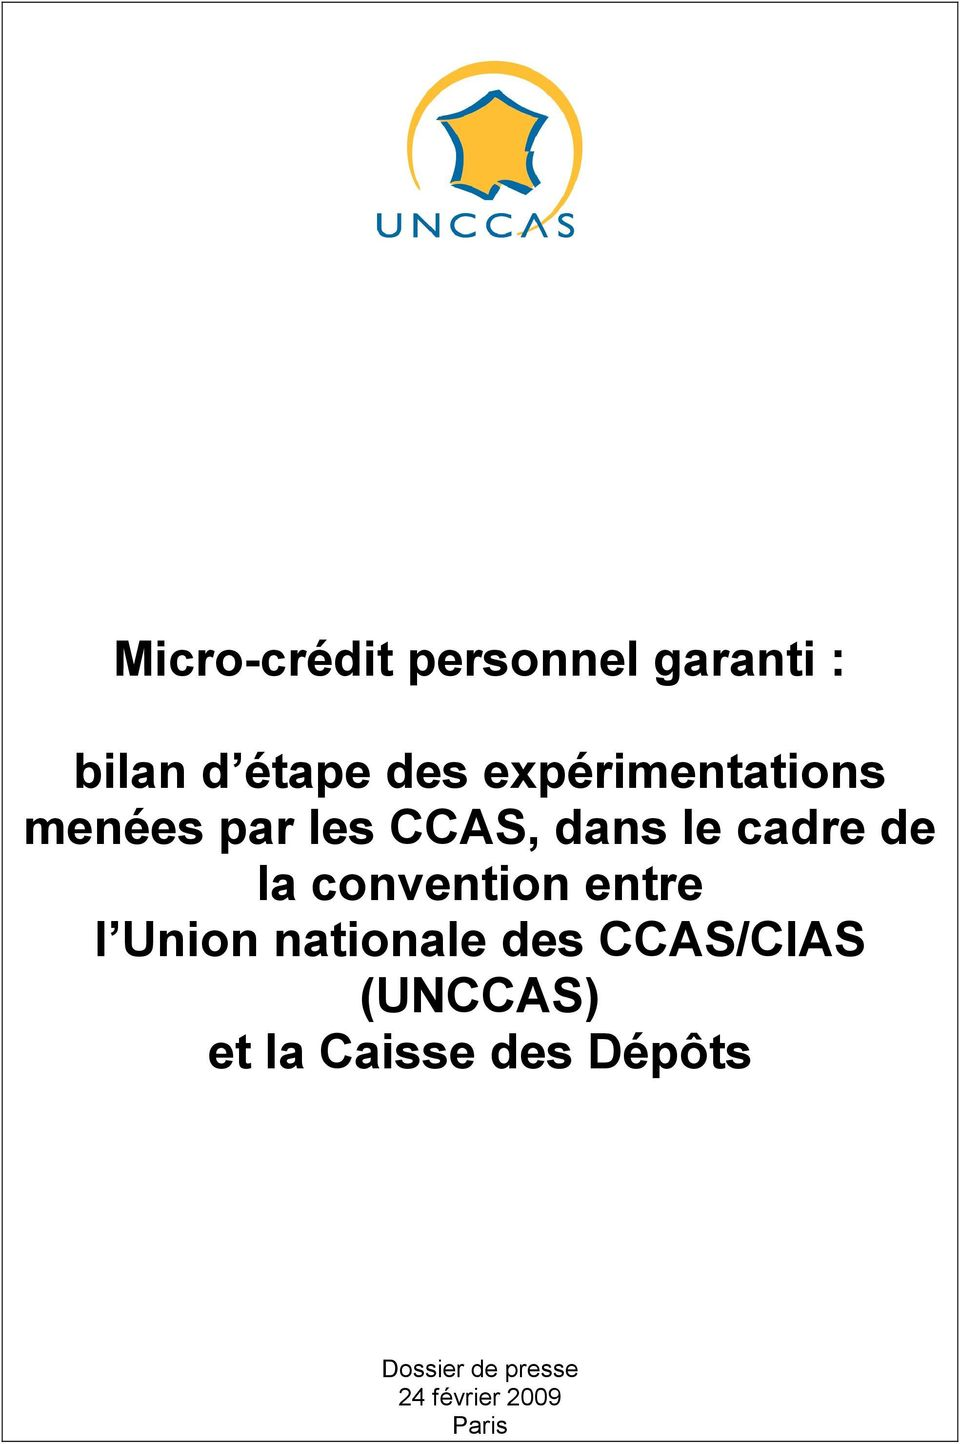 convention entre l Union nationale des CCAS/CIAS (UNCCAS)